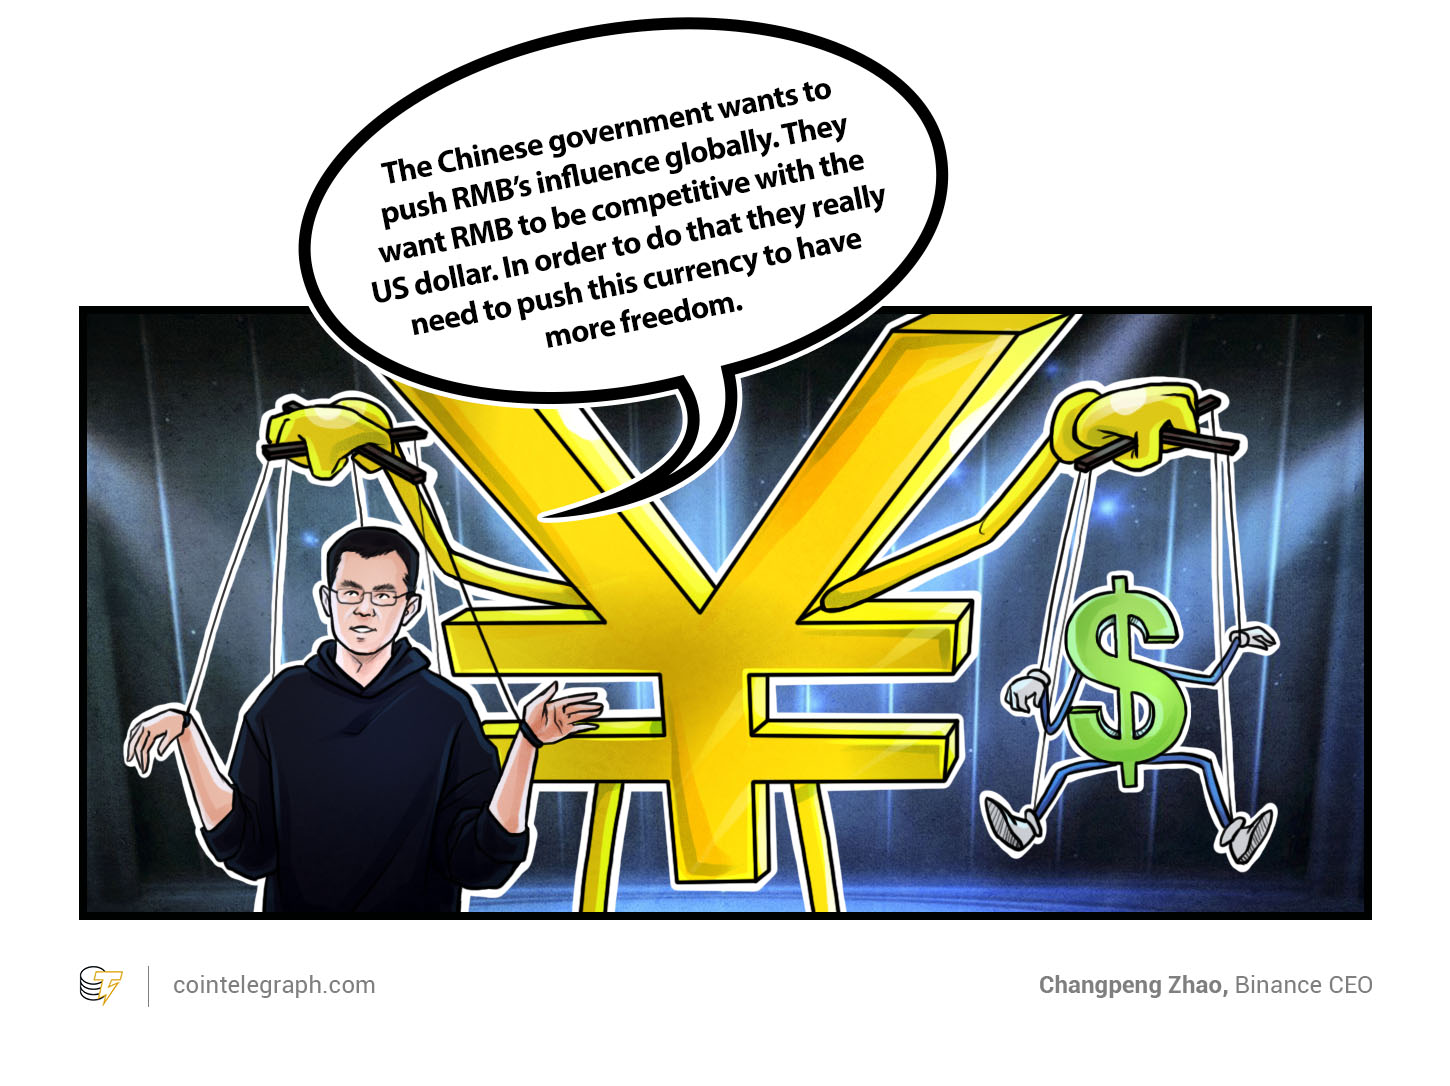 Changpeng Zhao, Binance CEO